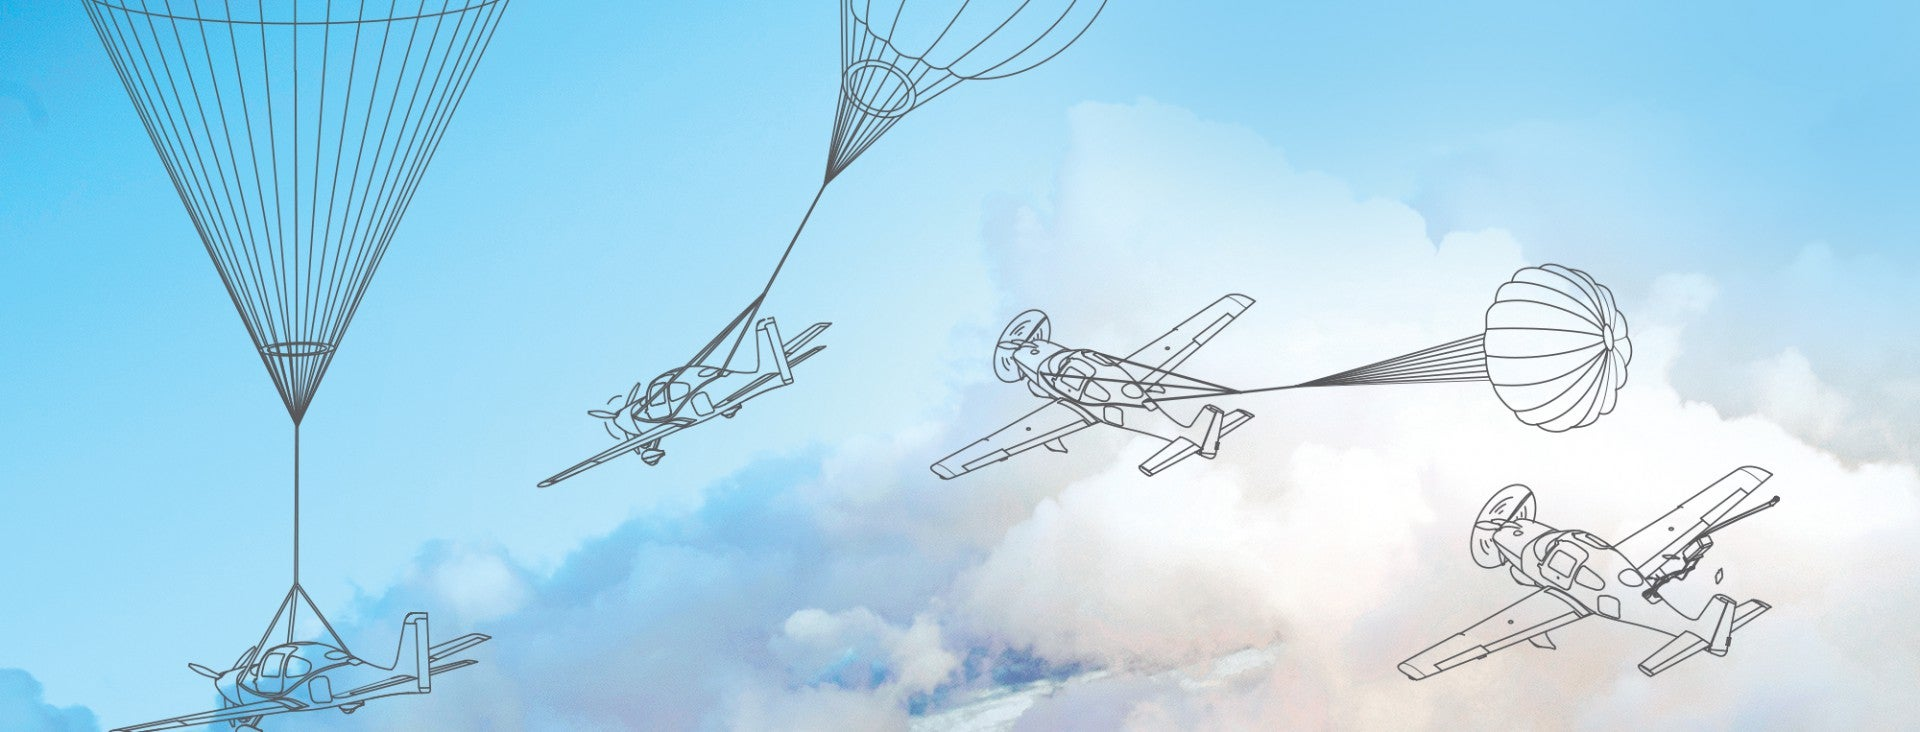 AirframeParachute-InnovationPage